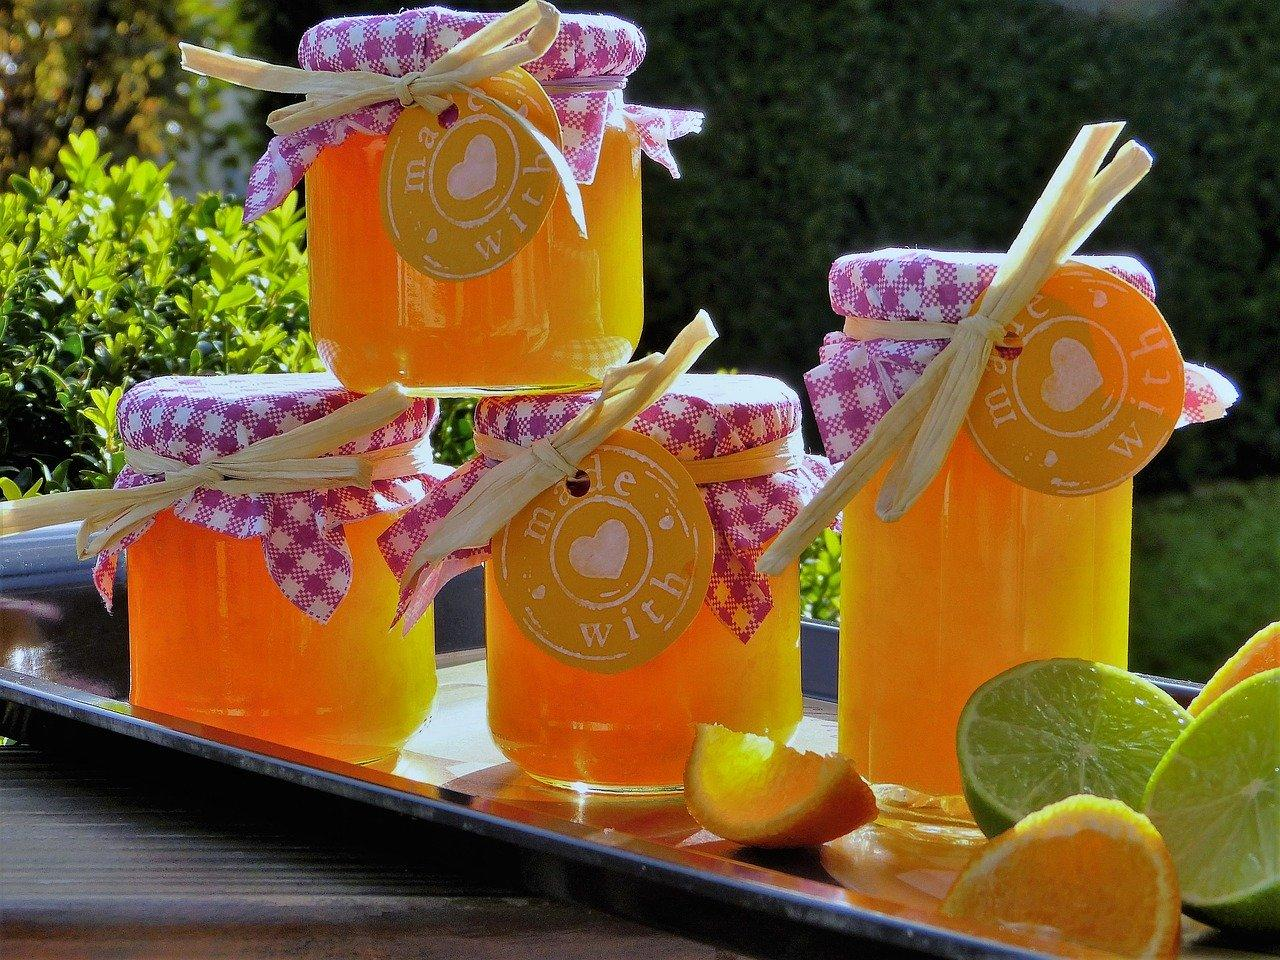 locally-produced-honey-in-jars